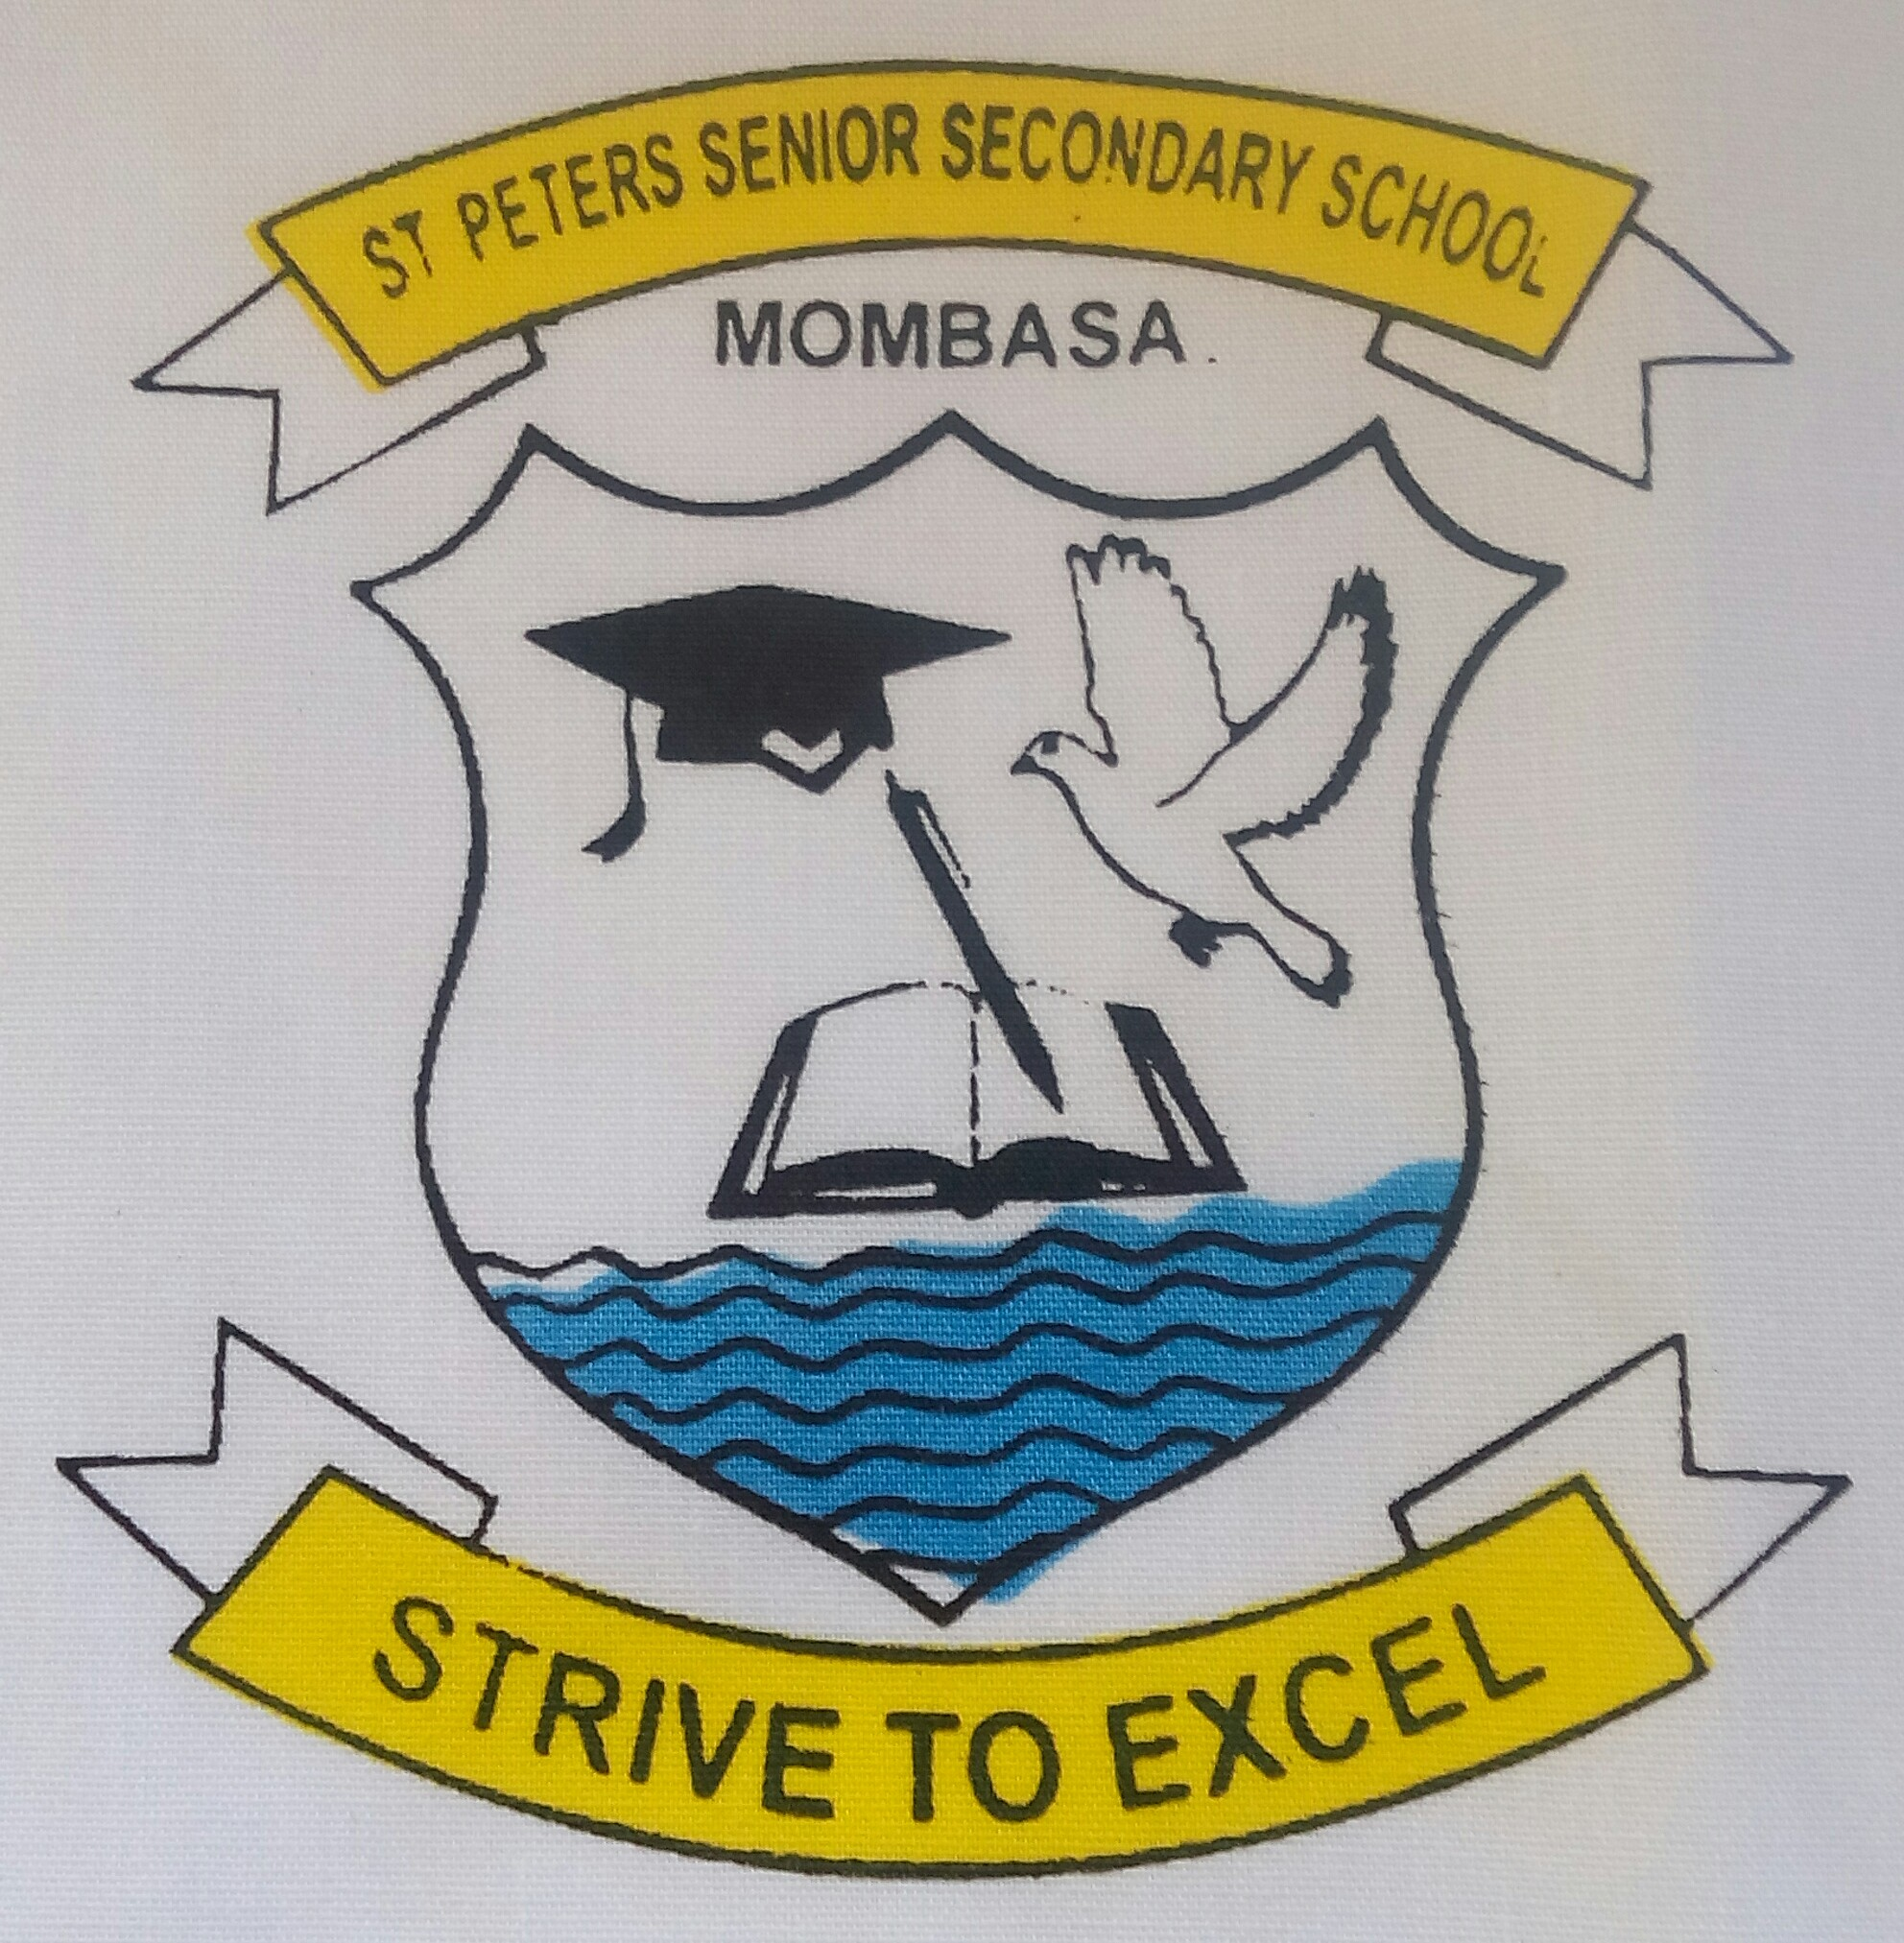 St Peters Senior Secondary School Mombasa